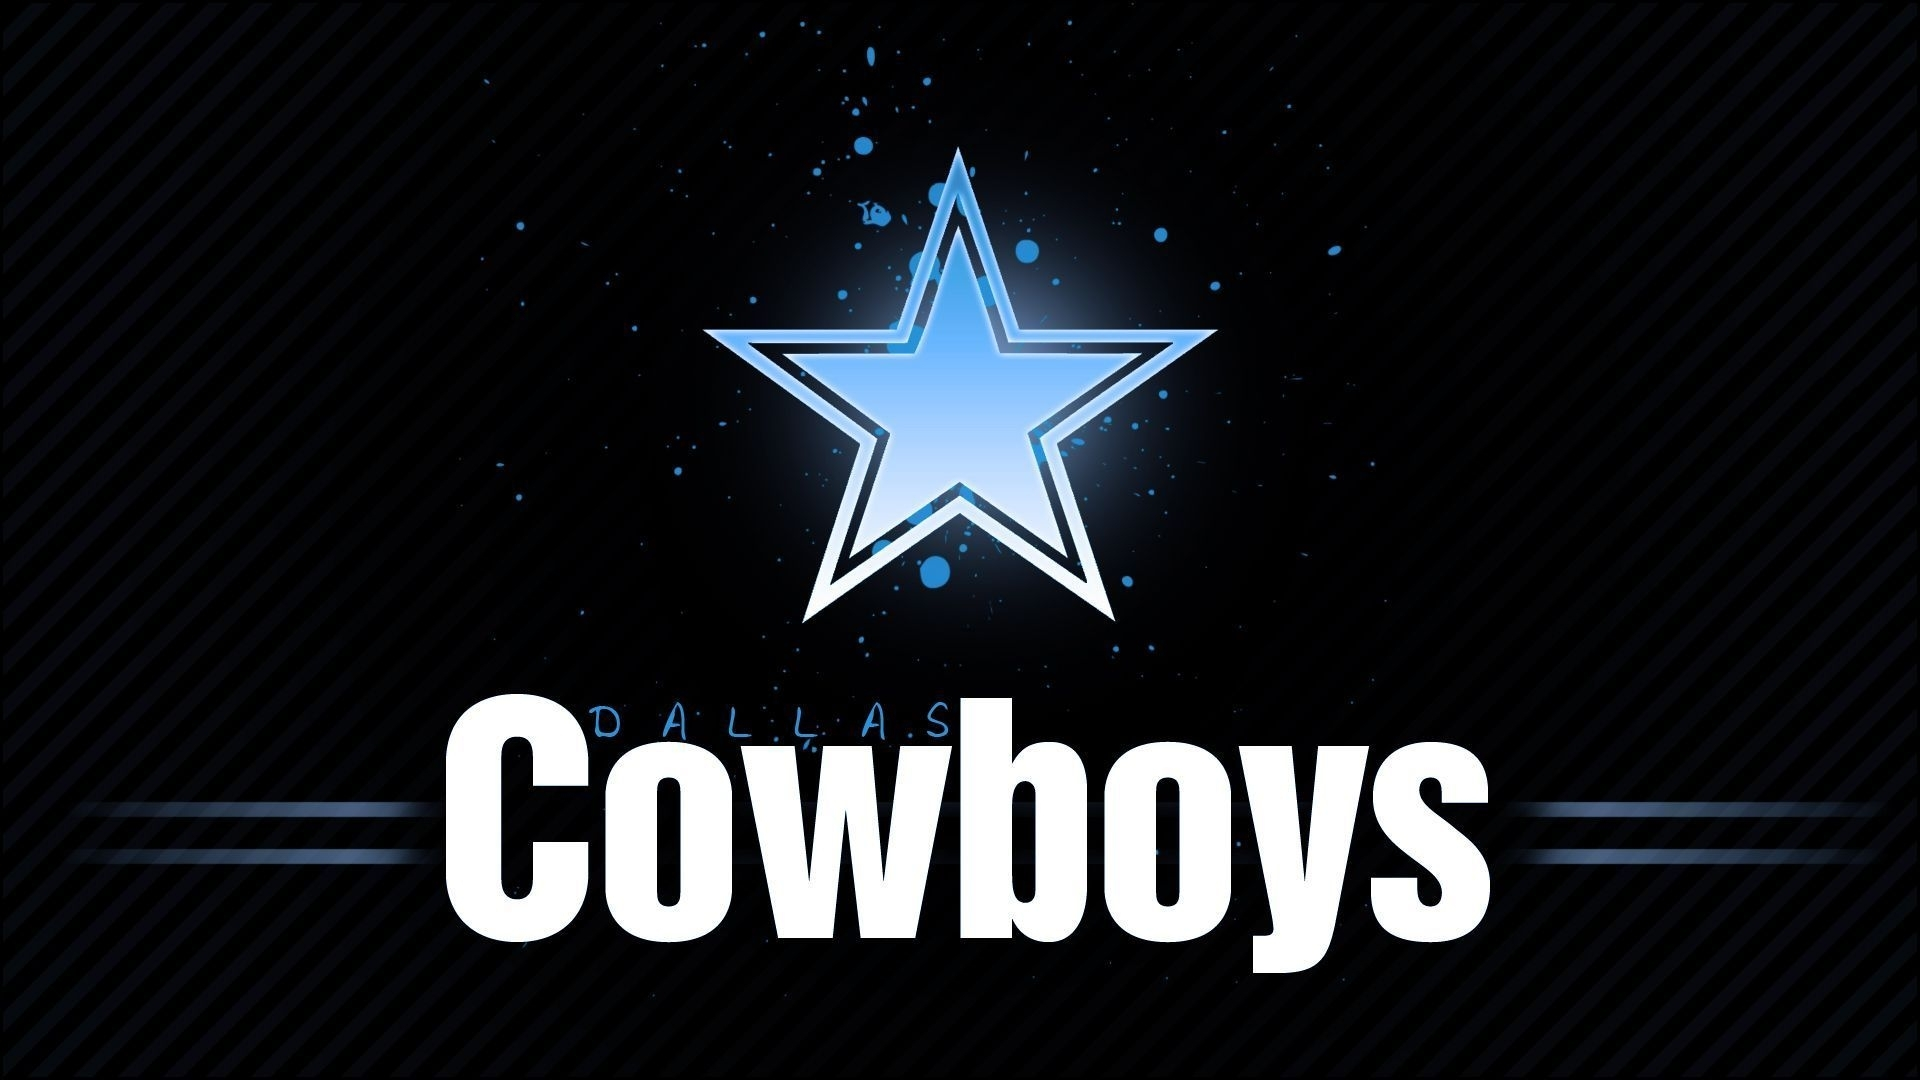 d dallas cowboys live wallpaper for android free download apps 1920